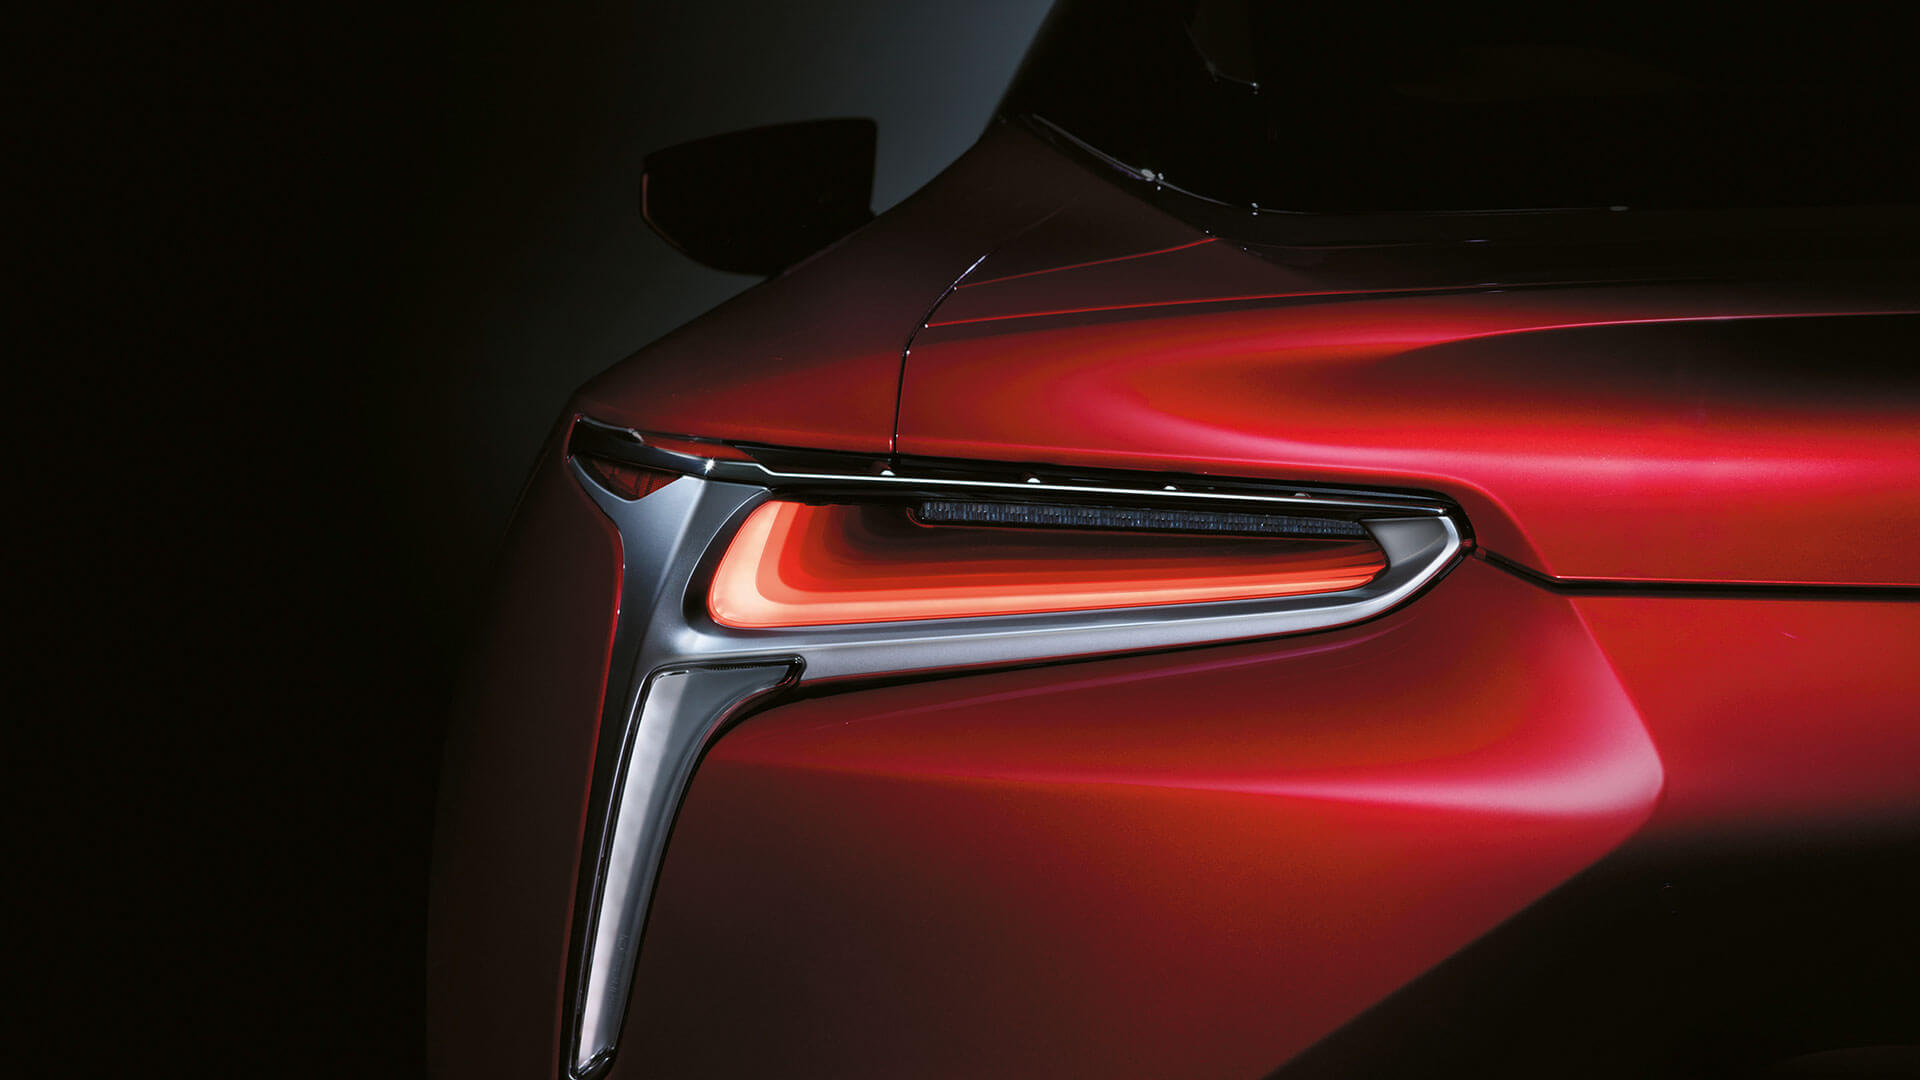 2017 lexus lc 500h features led rear lights